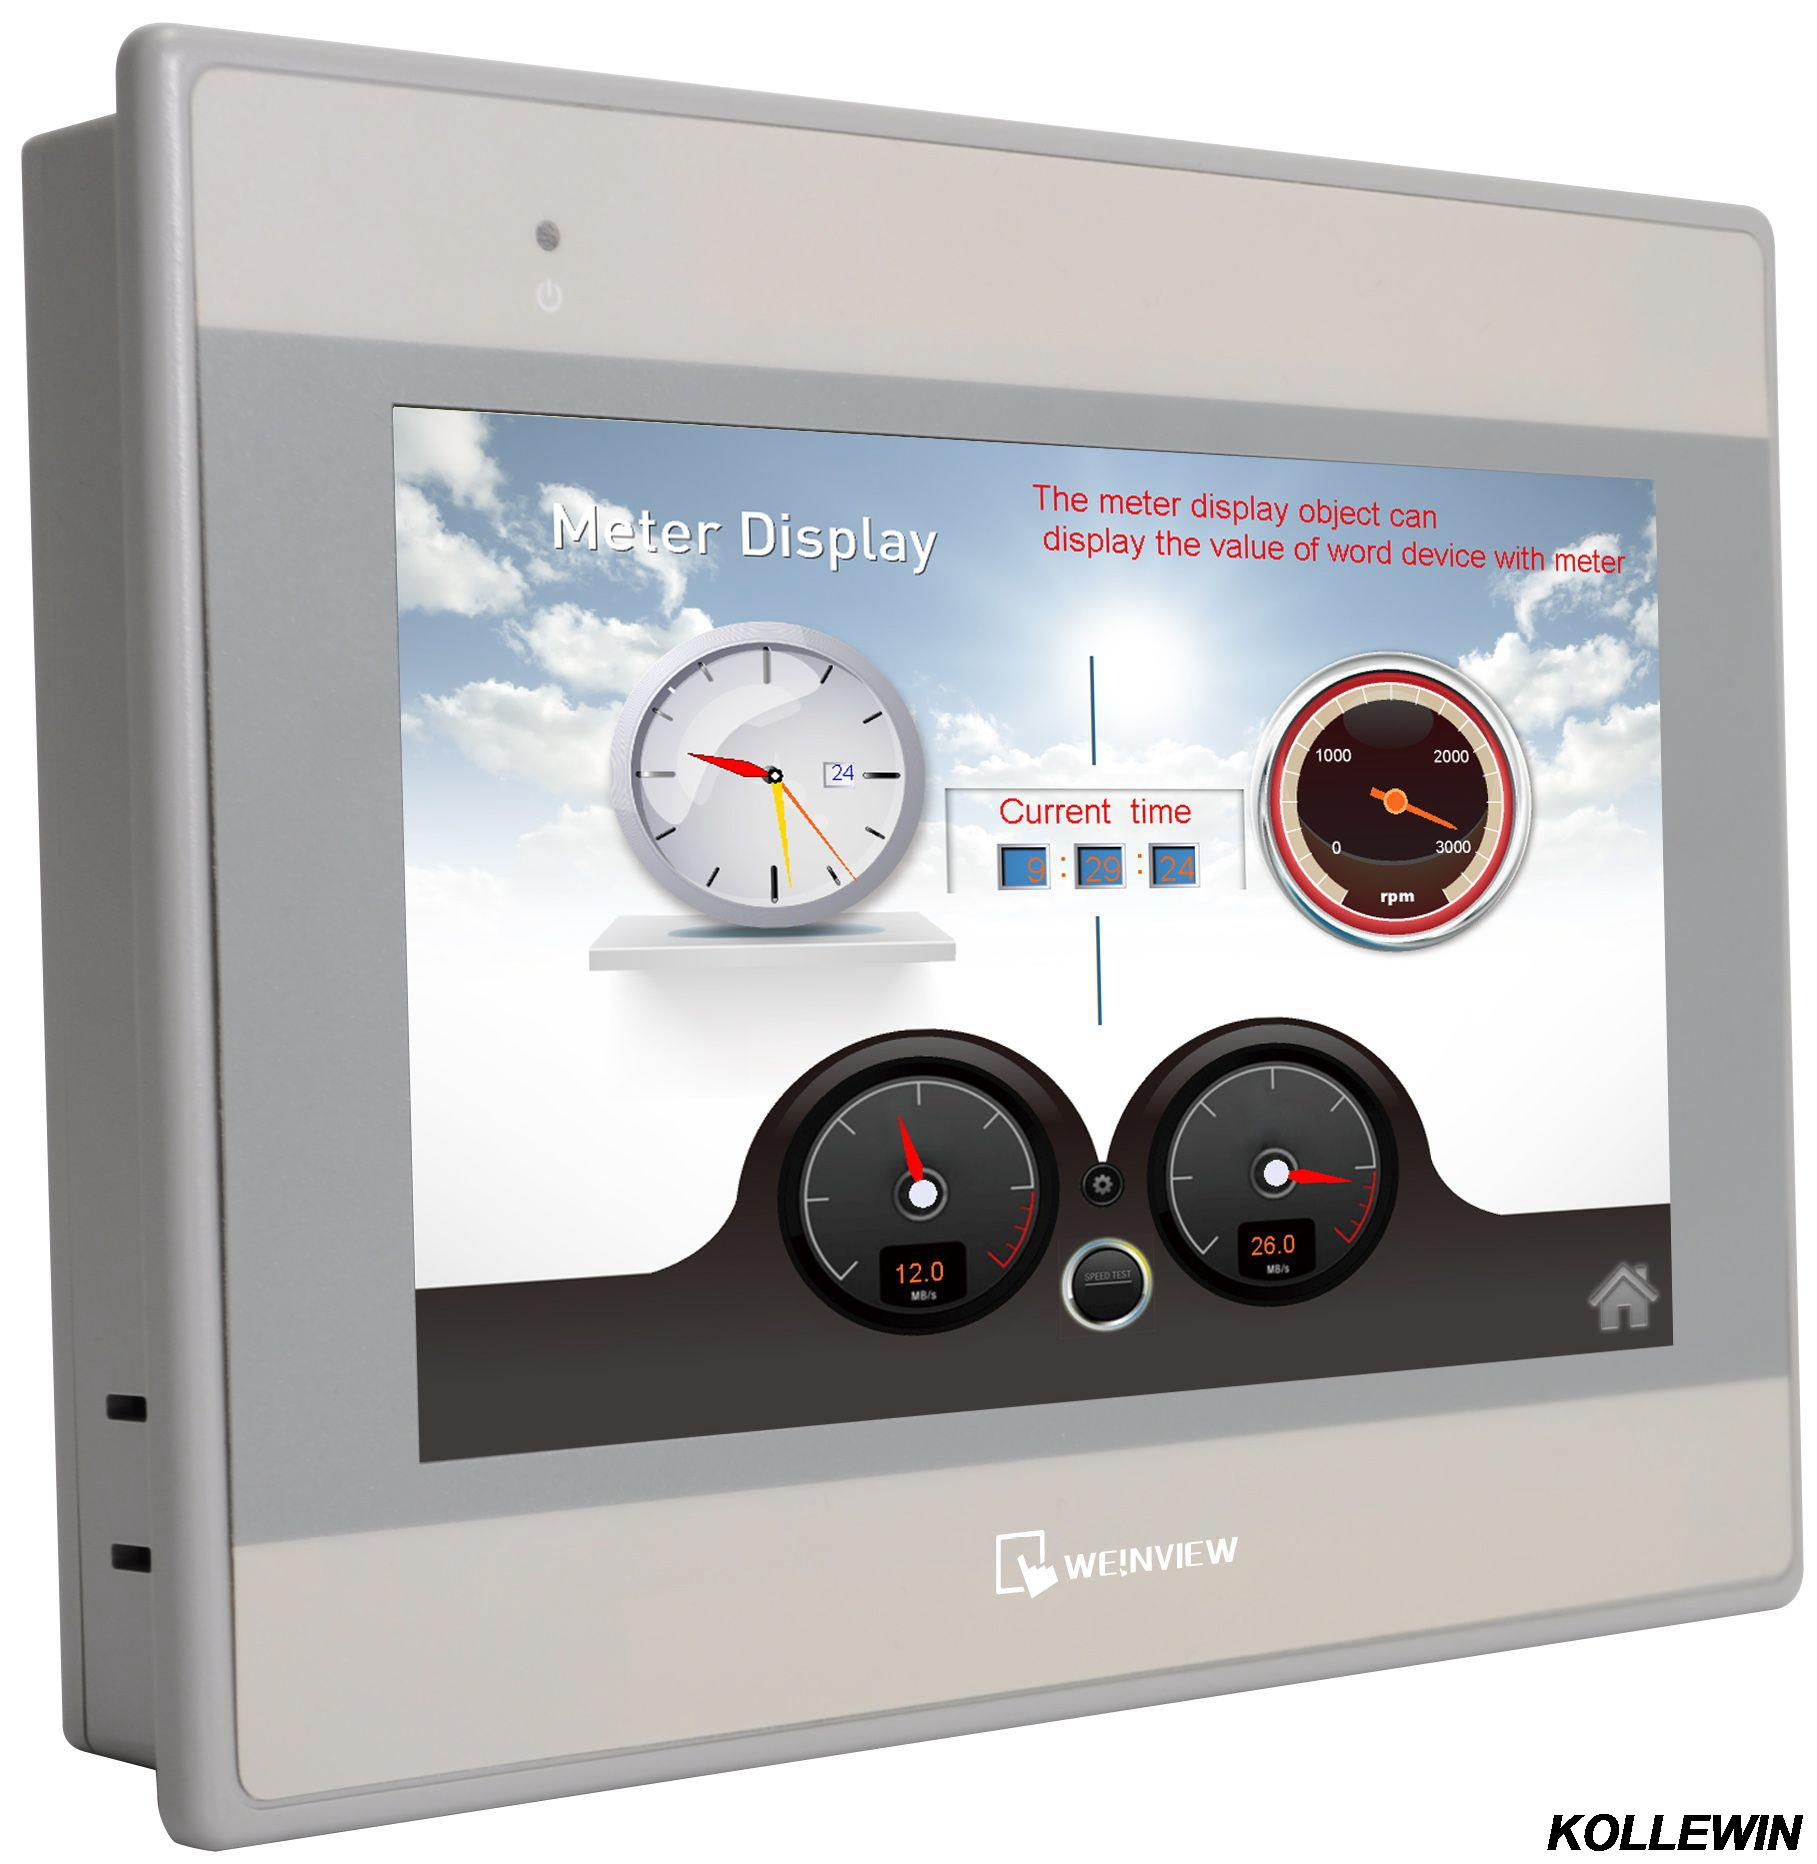 New Original WEINVIEW Weintek MT8071iE touch panel  MT8071IE MT 8071IE HMI 7 TFT 800x480 32Bits 600MHZ 1 yearwarranty